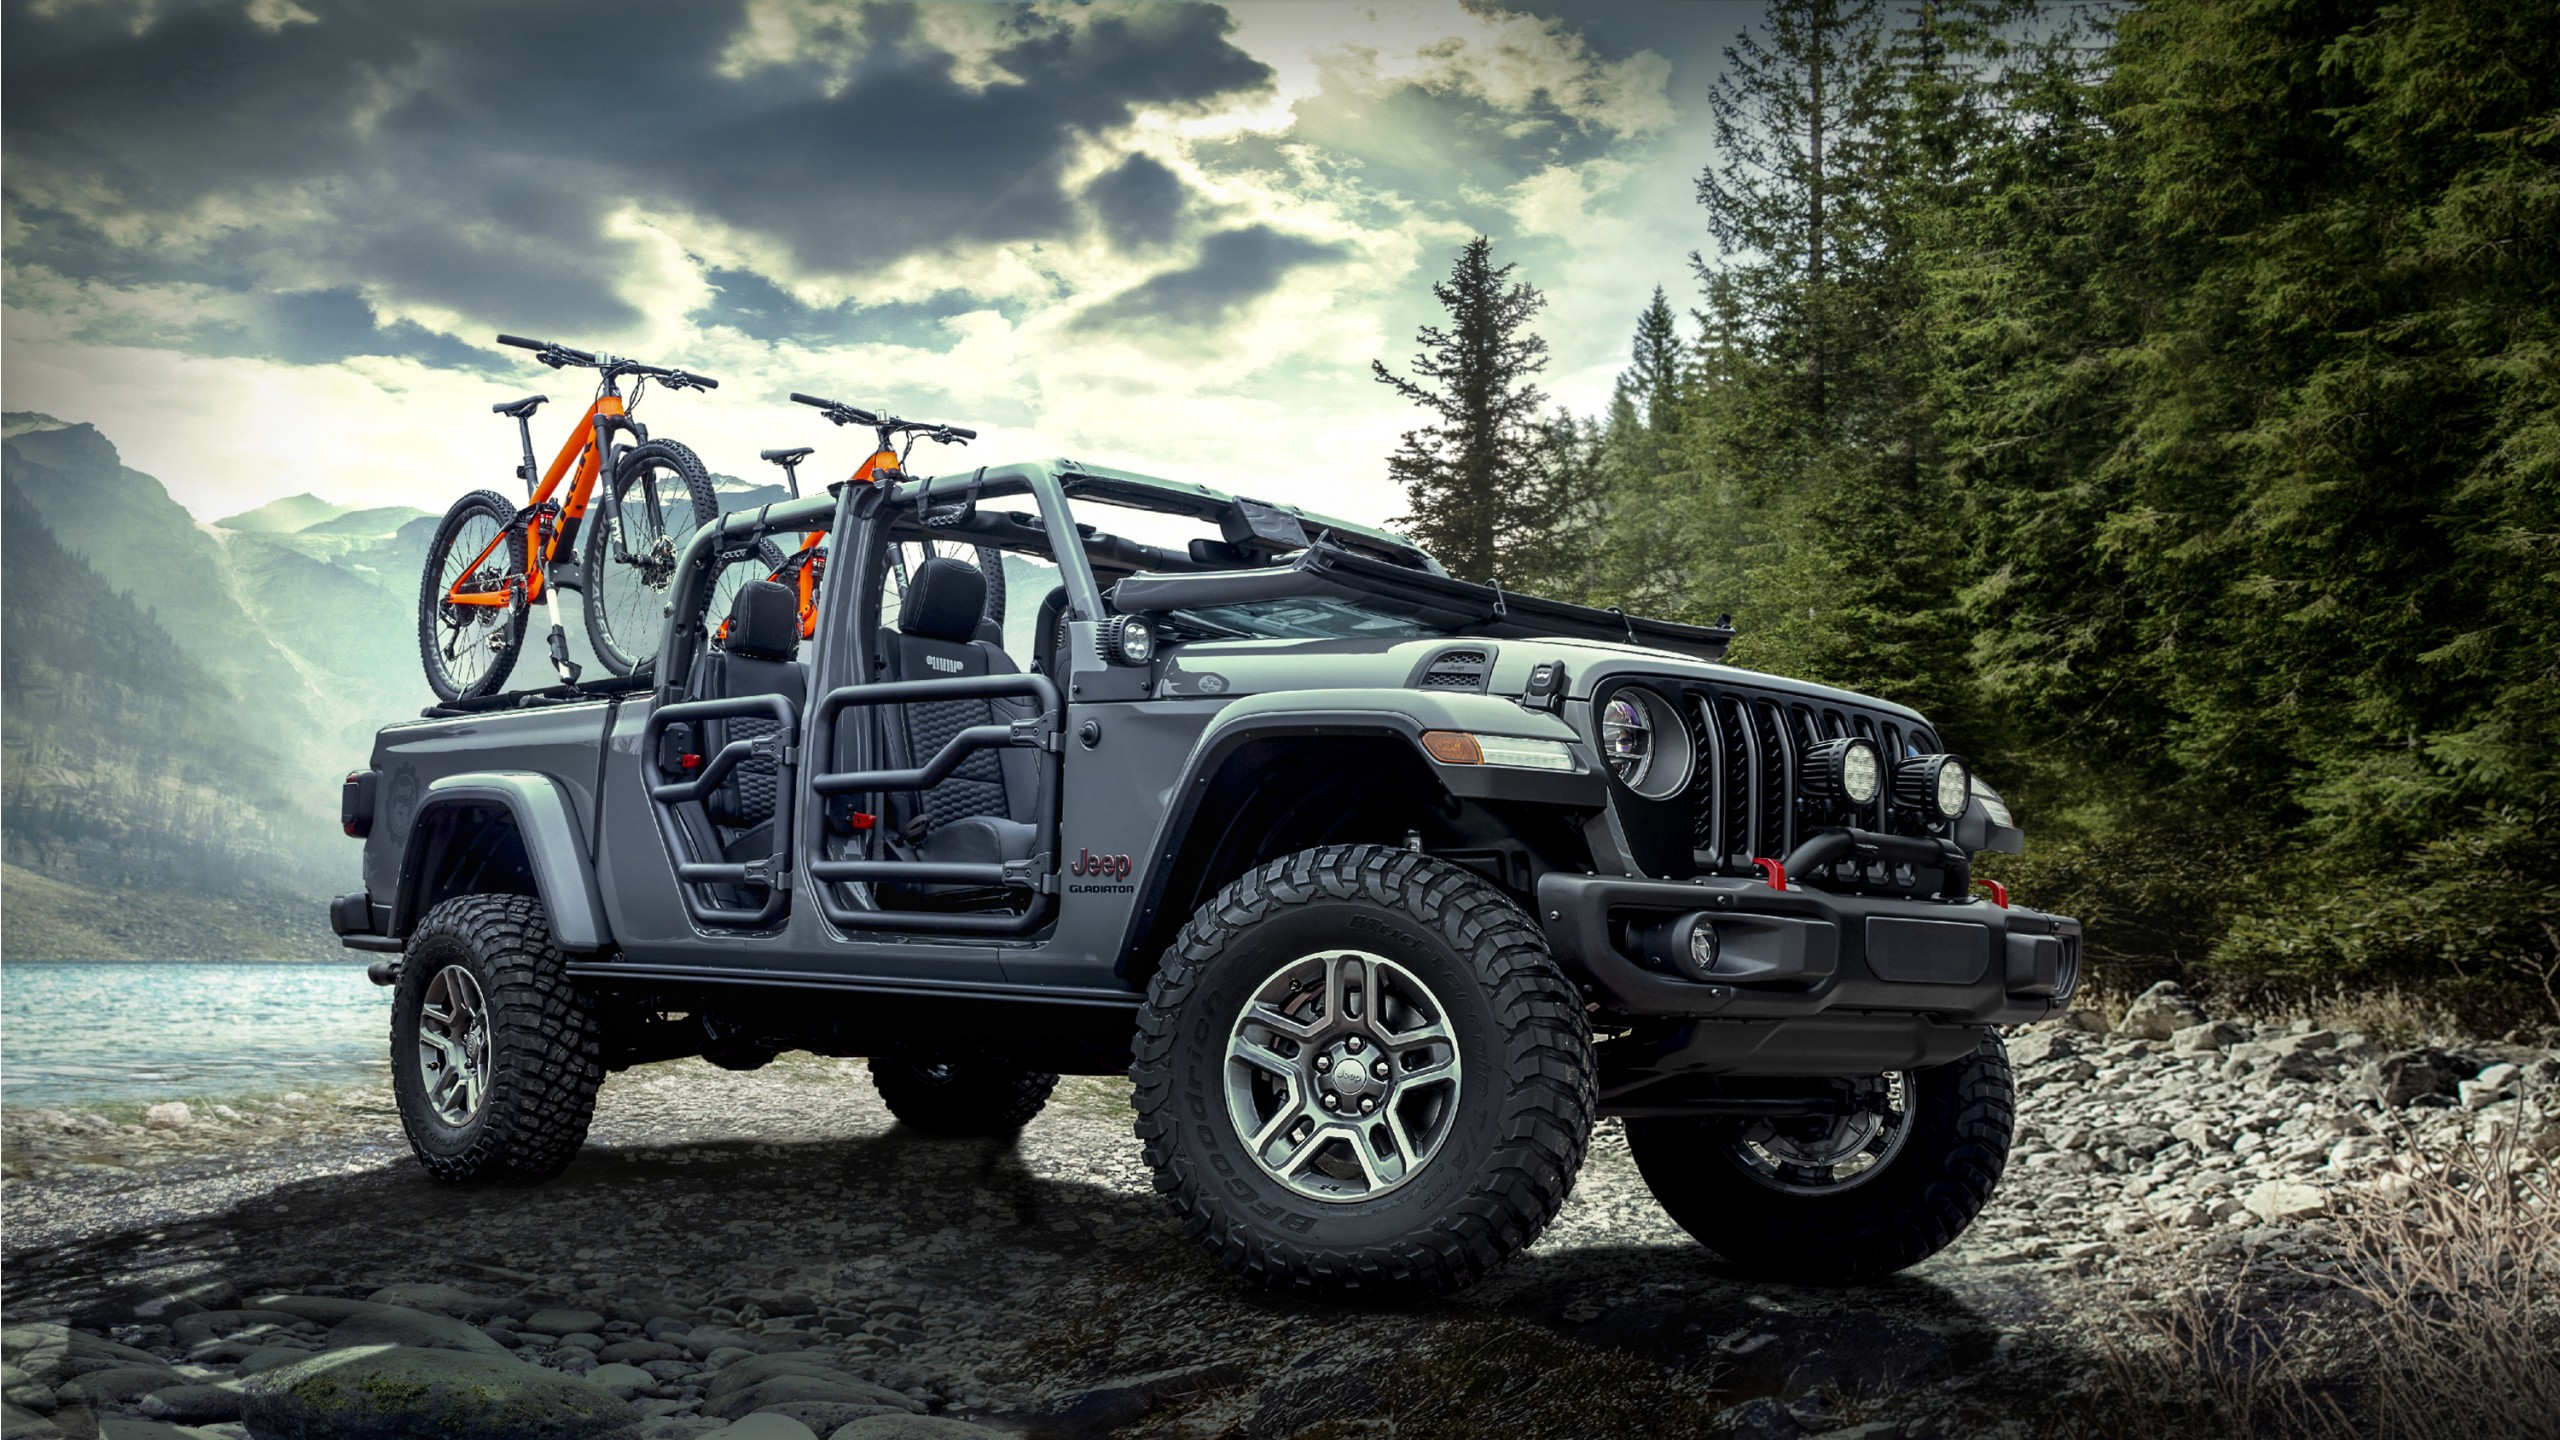 Cadillac Cars Hd Wallpapers 2020 Mopar Jeep Gladiator Rubicon Wallpaper Hd Car